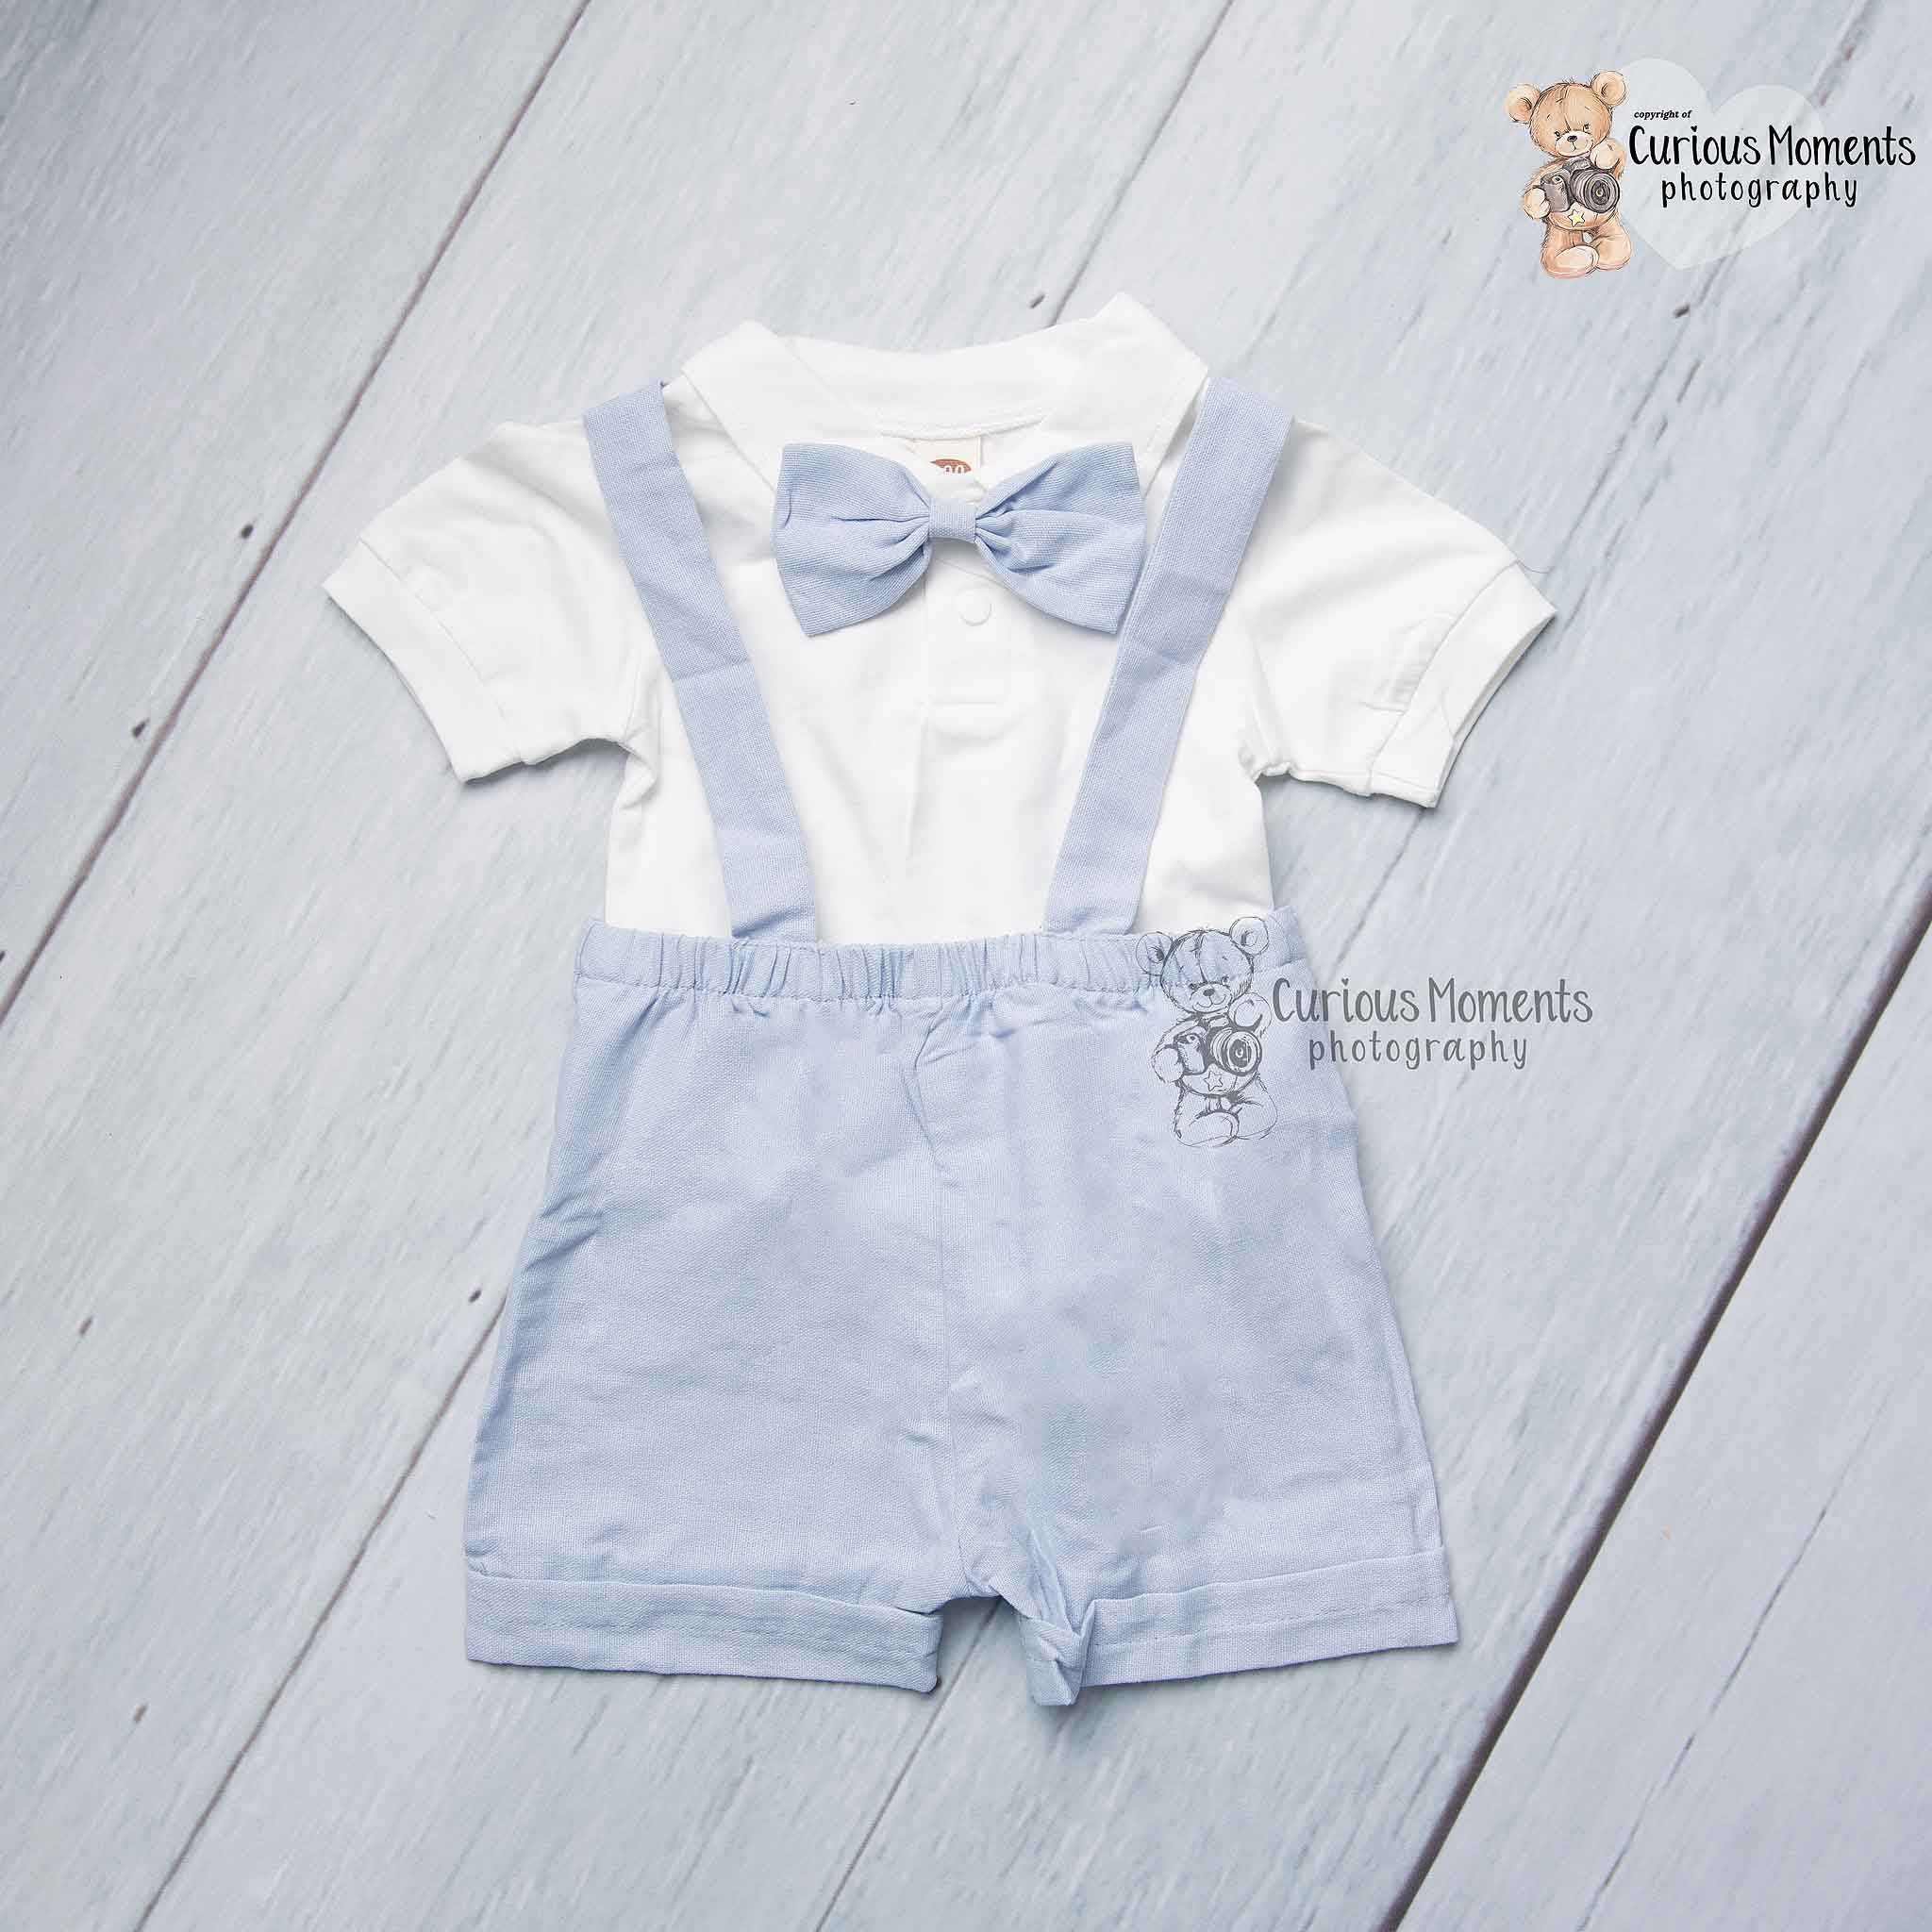 Blue and white gentlemans suit for cake smash ammanford